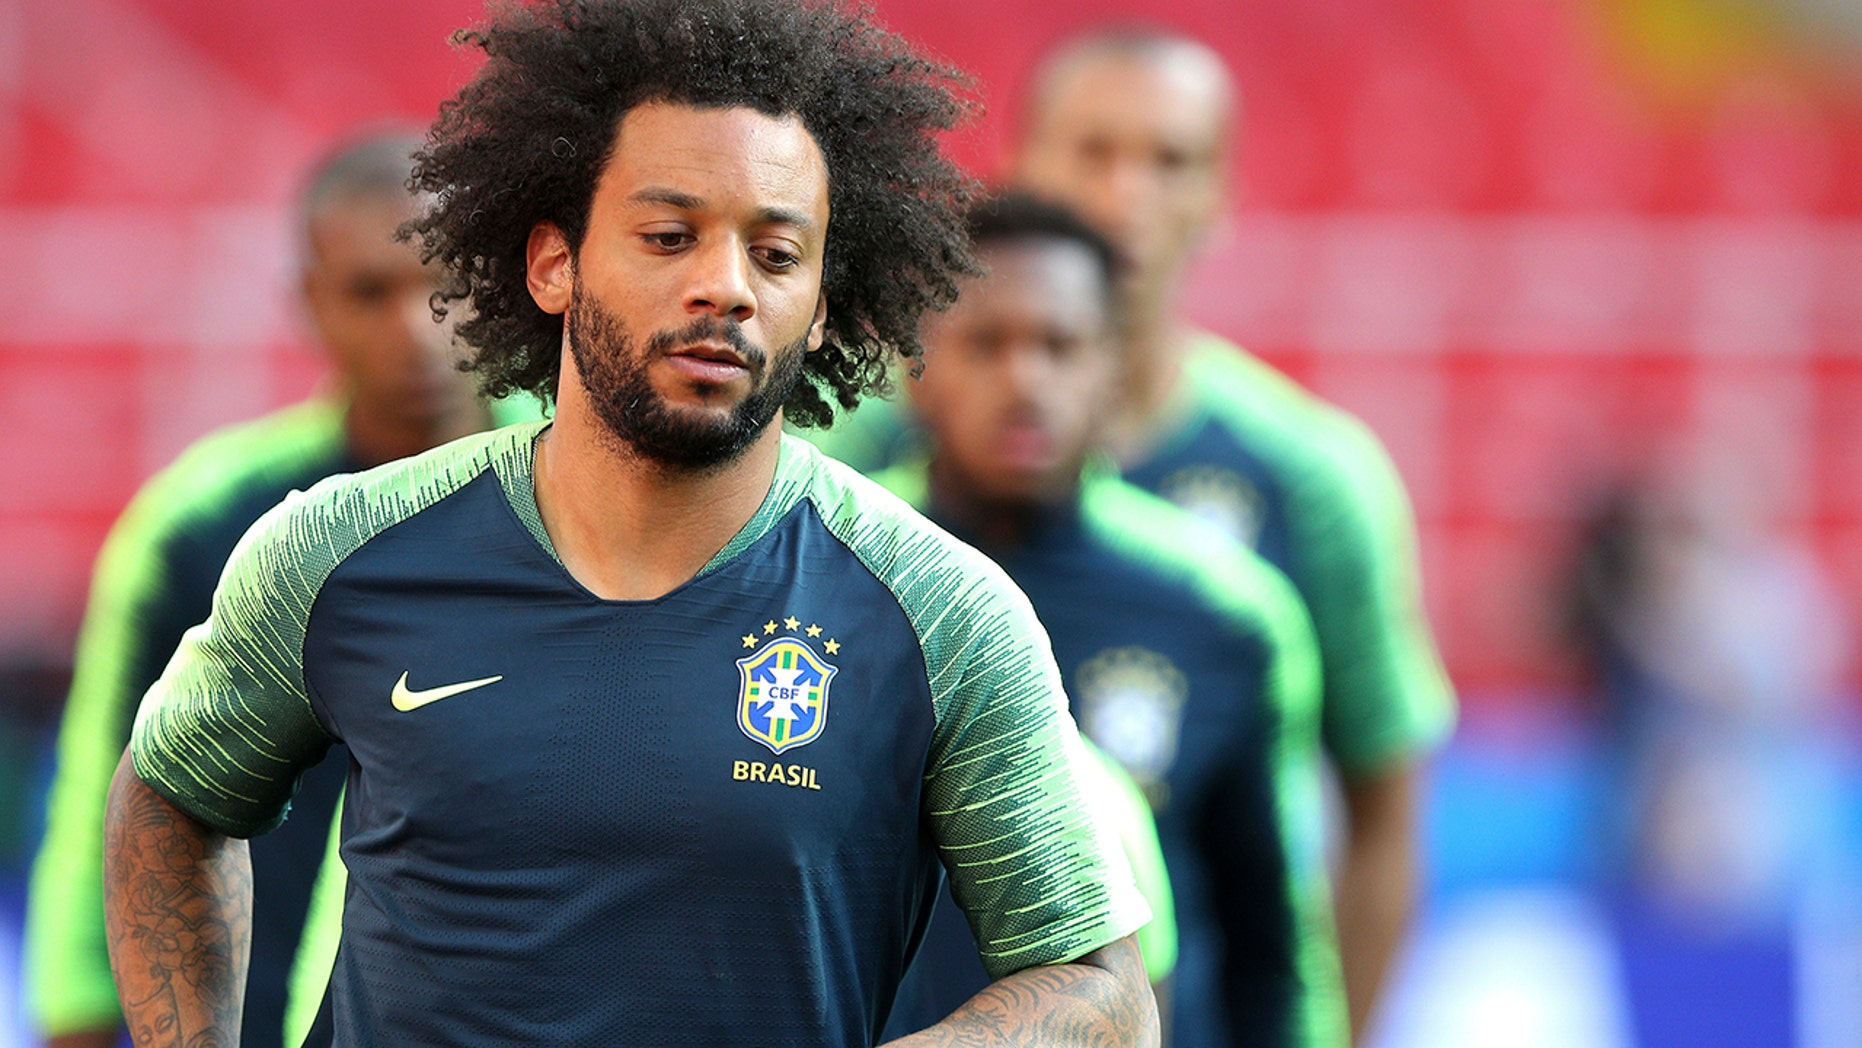 Marcelo limped off the field in the 10th minute of Wednesday's game against Serbia.